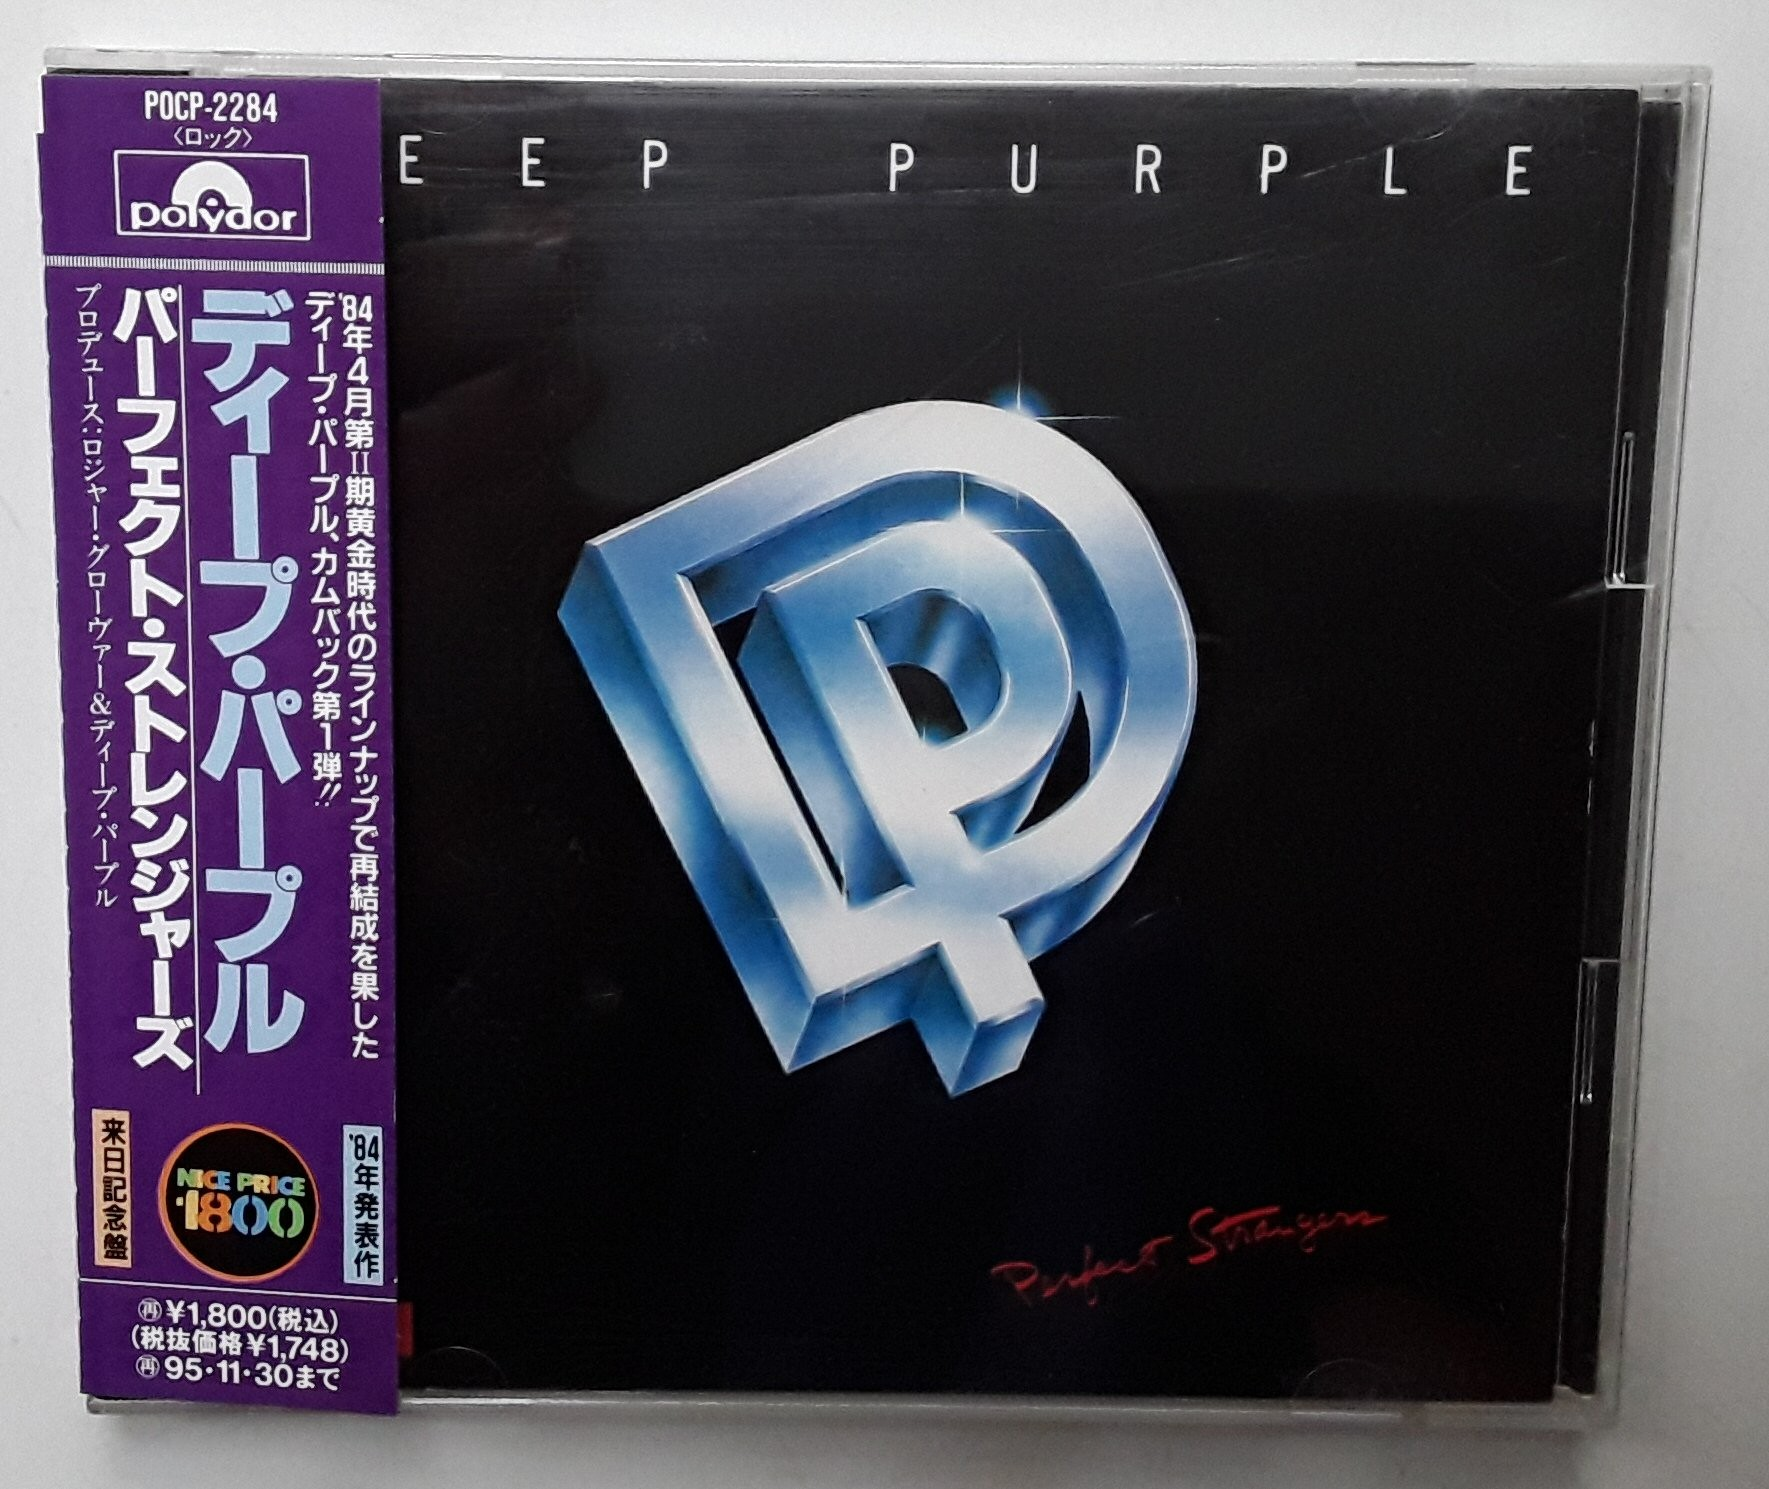 Deep Purple Cd Jap Perfect Stranger Japan Records Shop Electrical Software Eep